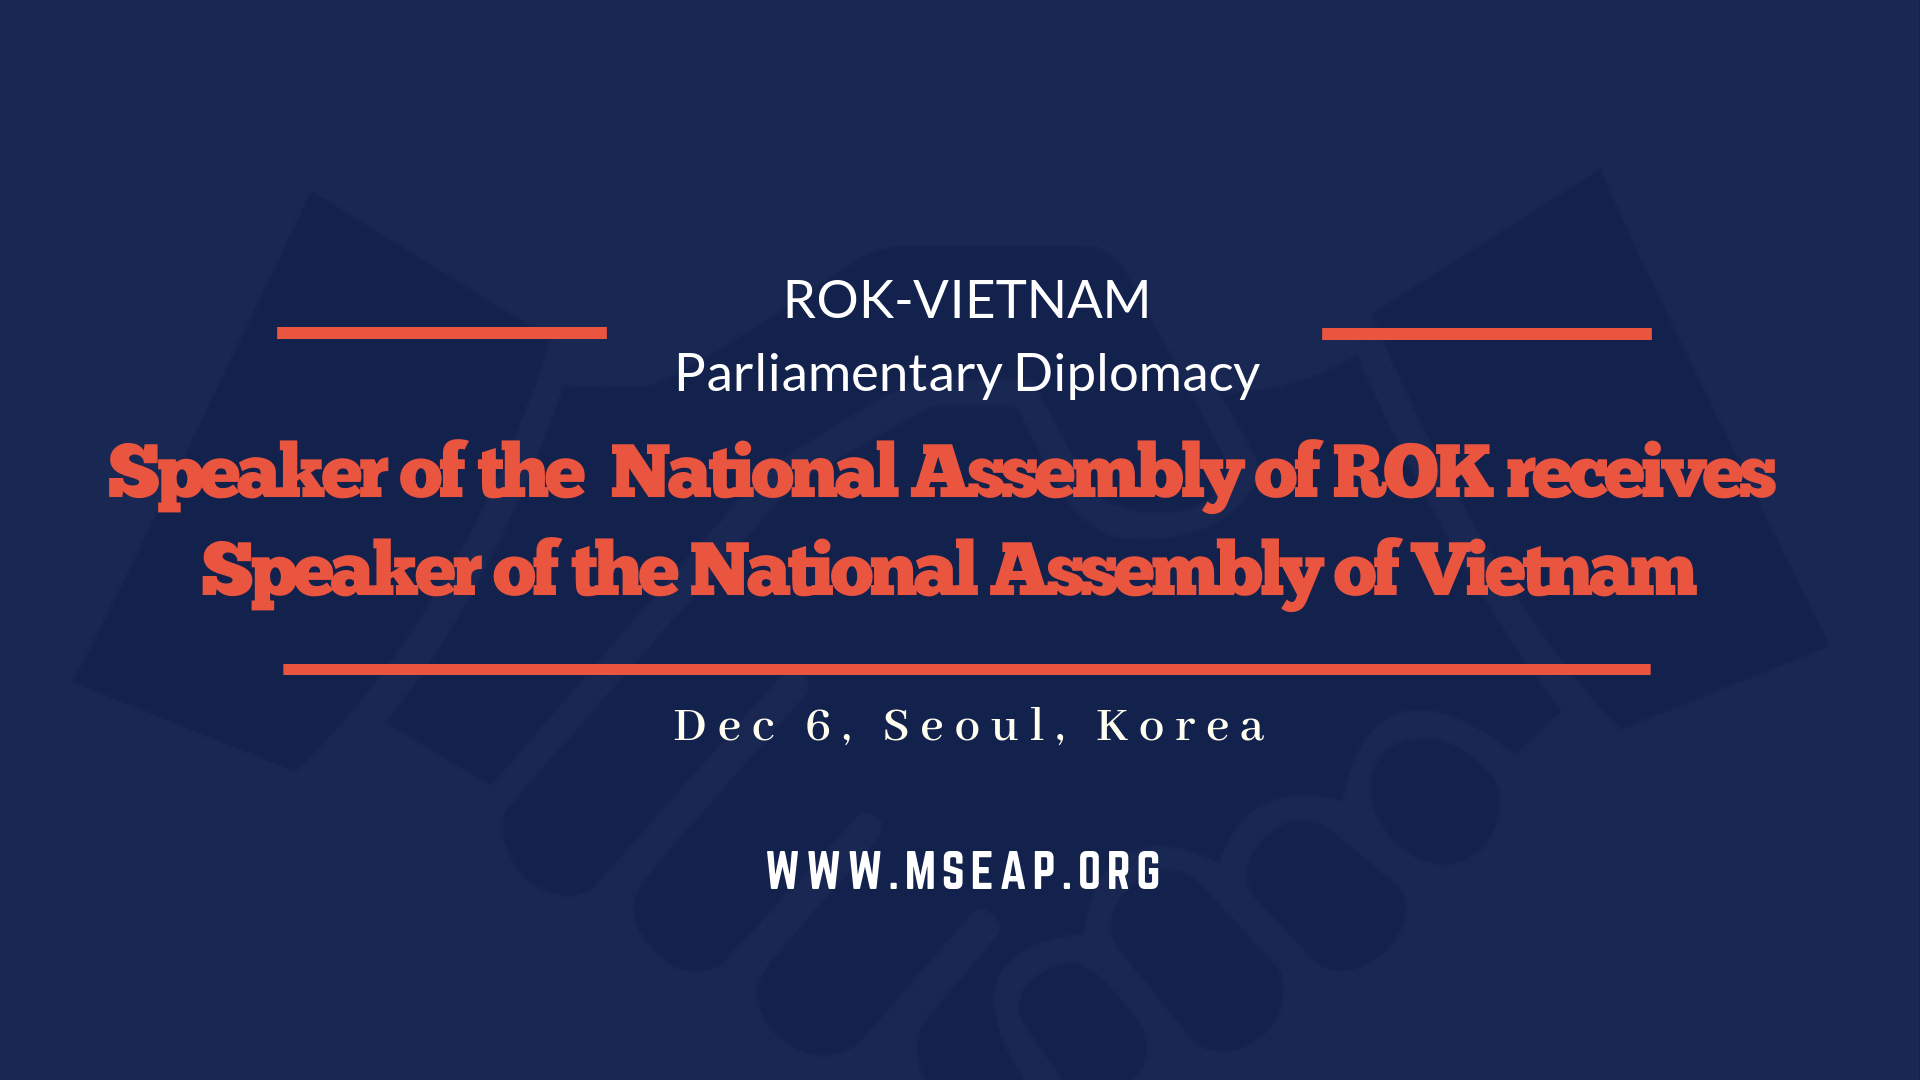 Speaker of the National Assembly of ROK receives the speaker of the National Assembly of Vietnam